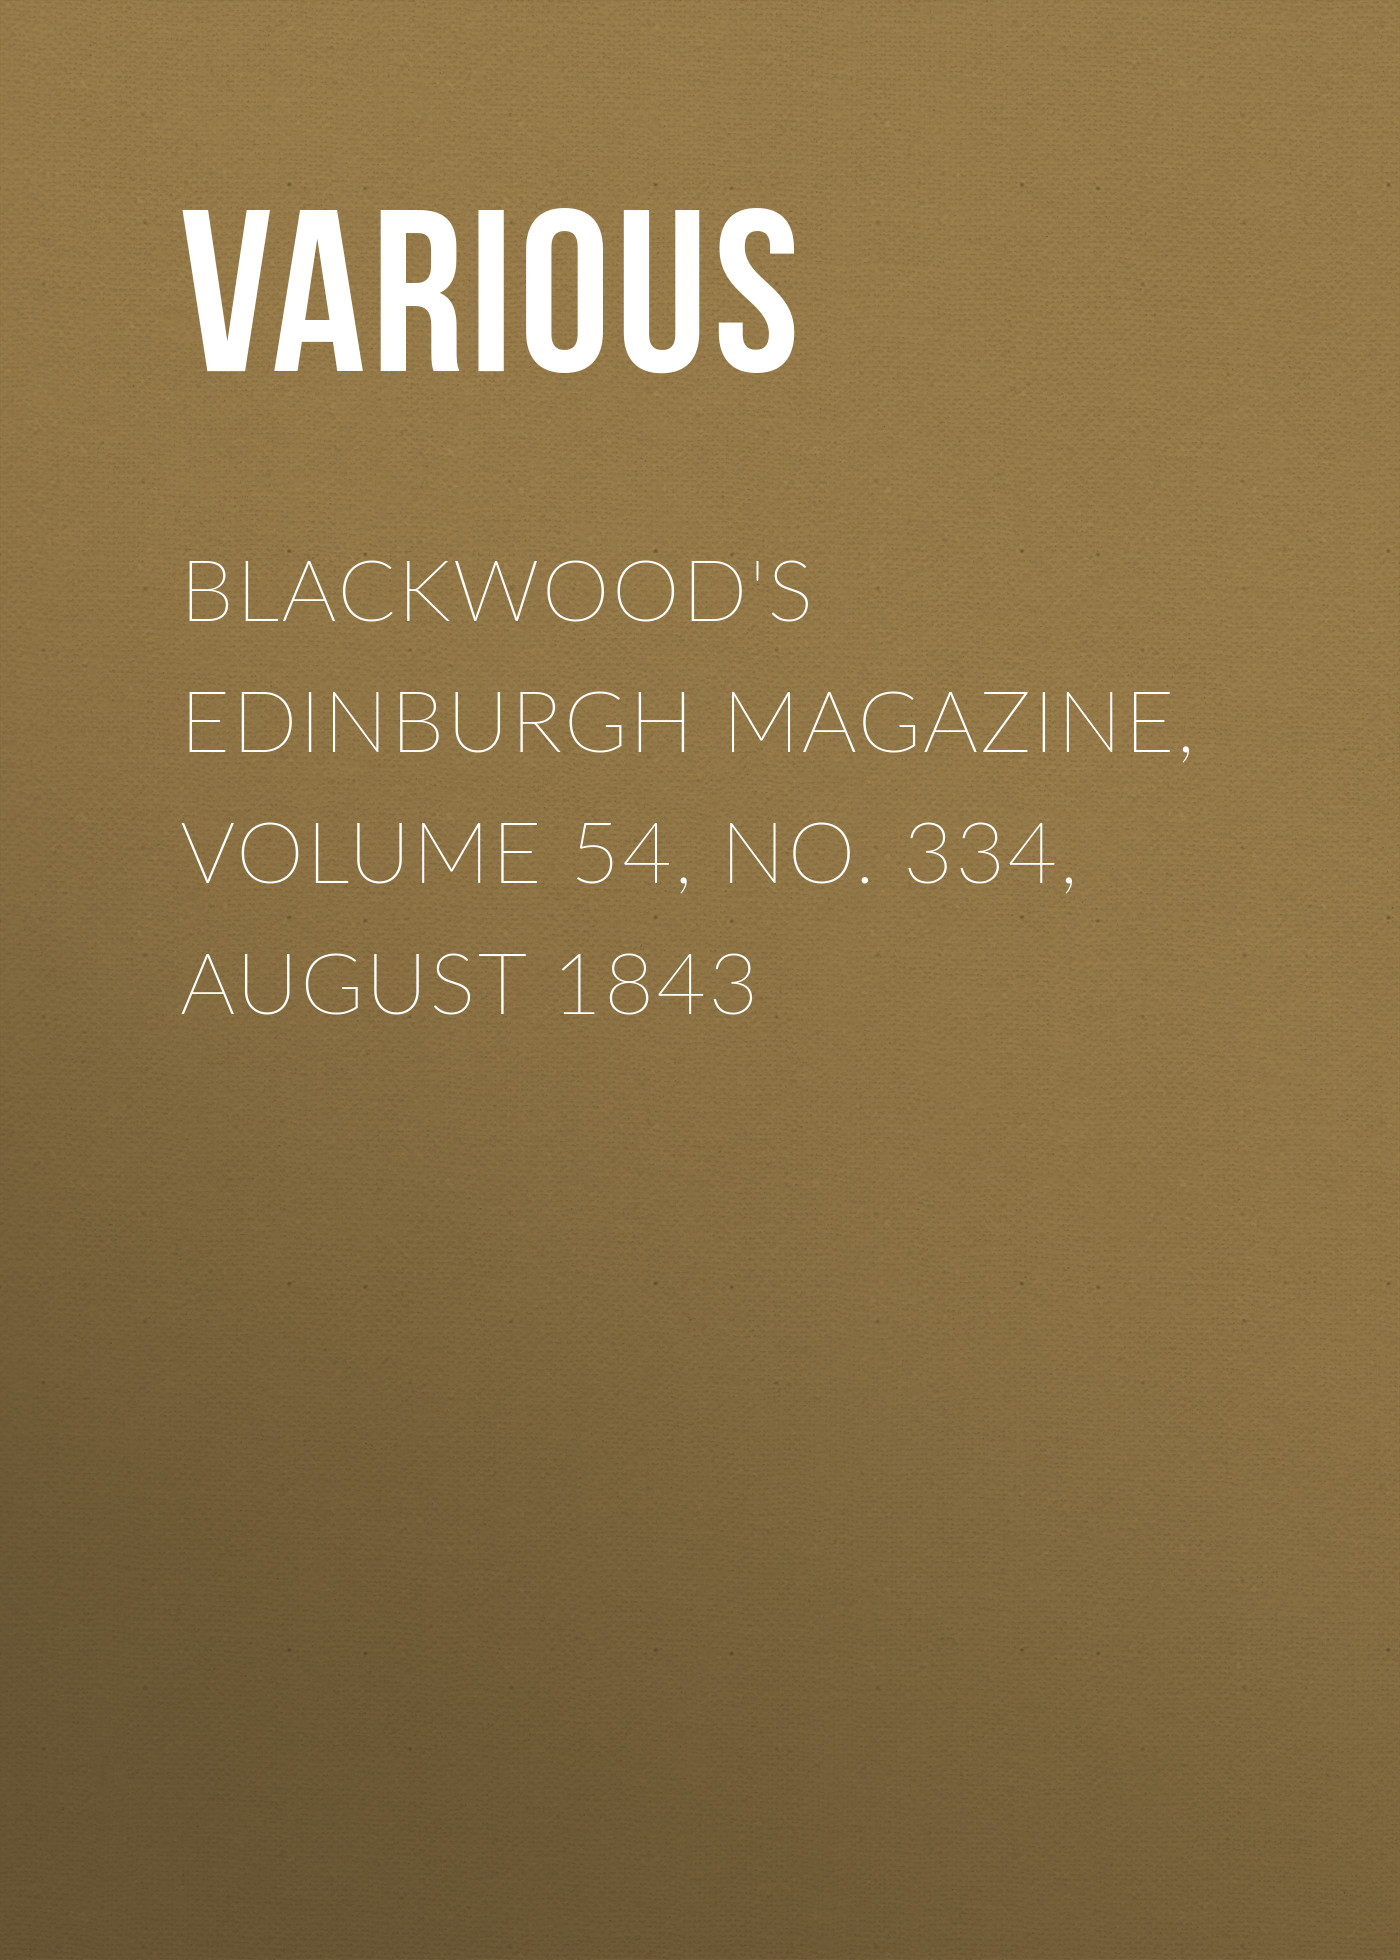 Various Blackwood's Edinburgh Magazine, Volume 54, No. 334, August 1843 the yale literary magazine volume 54 issue 7